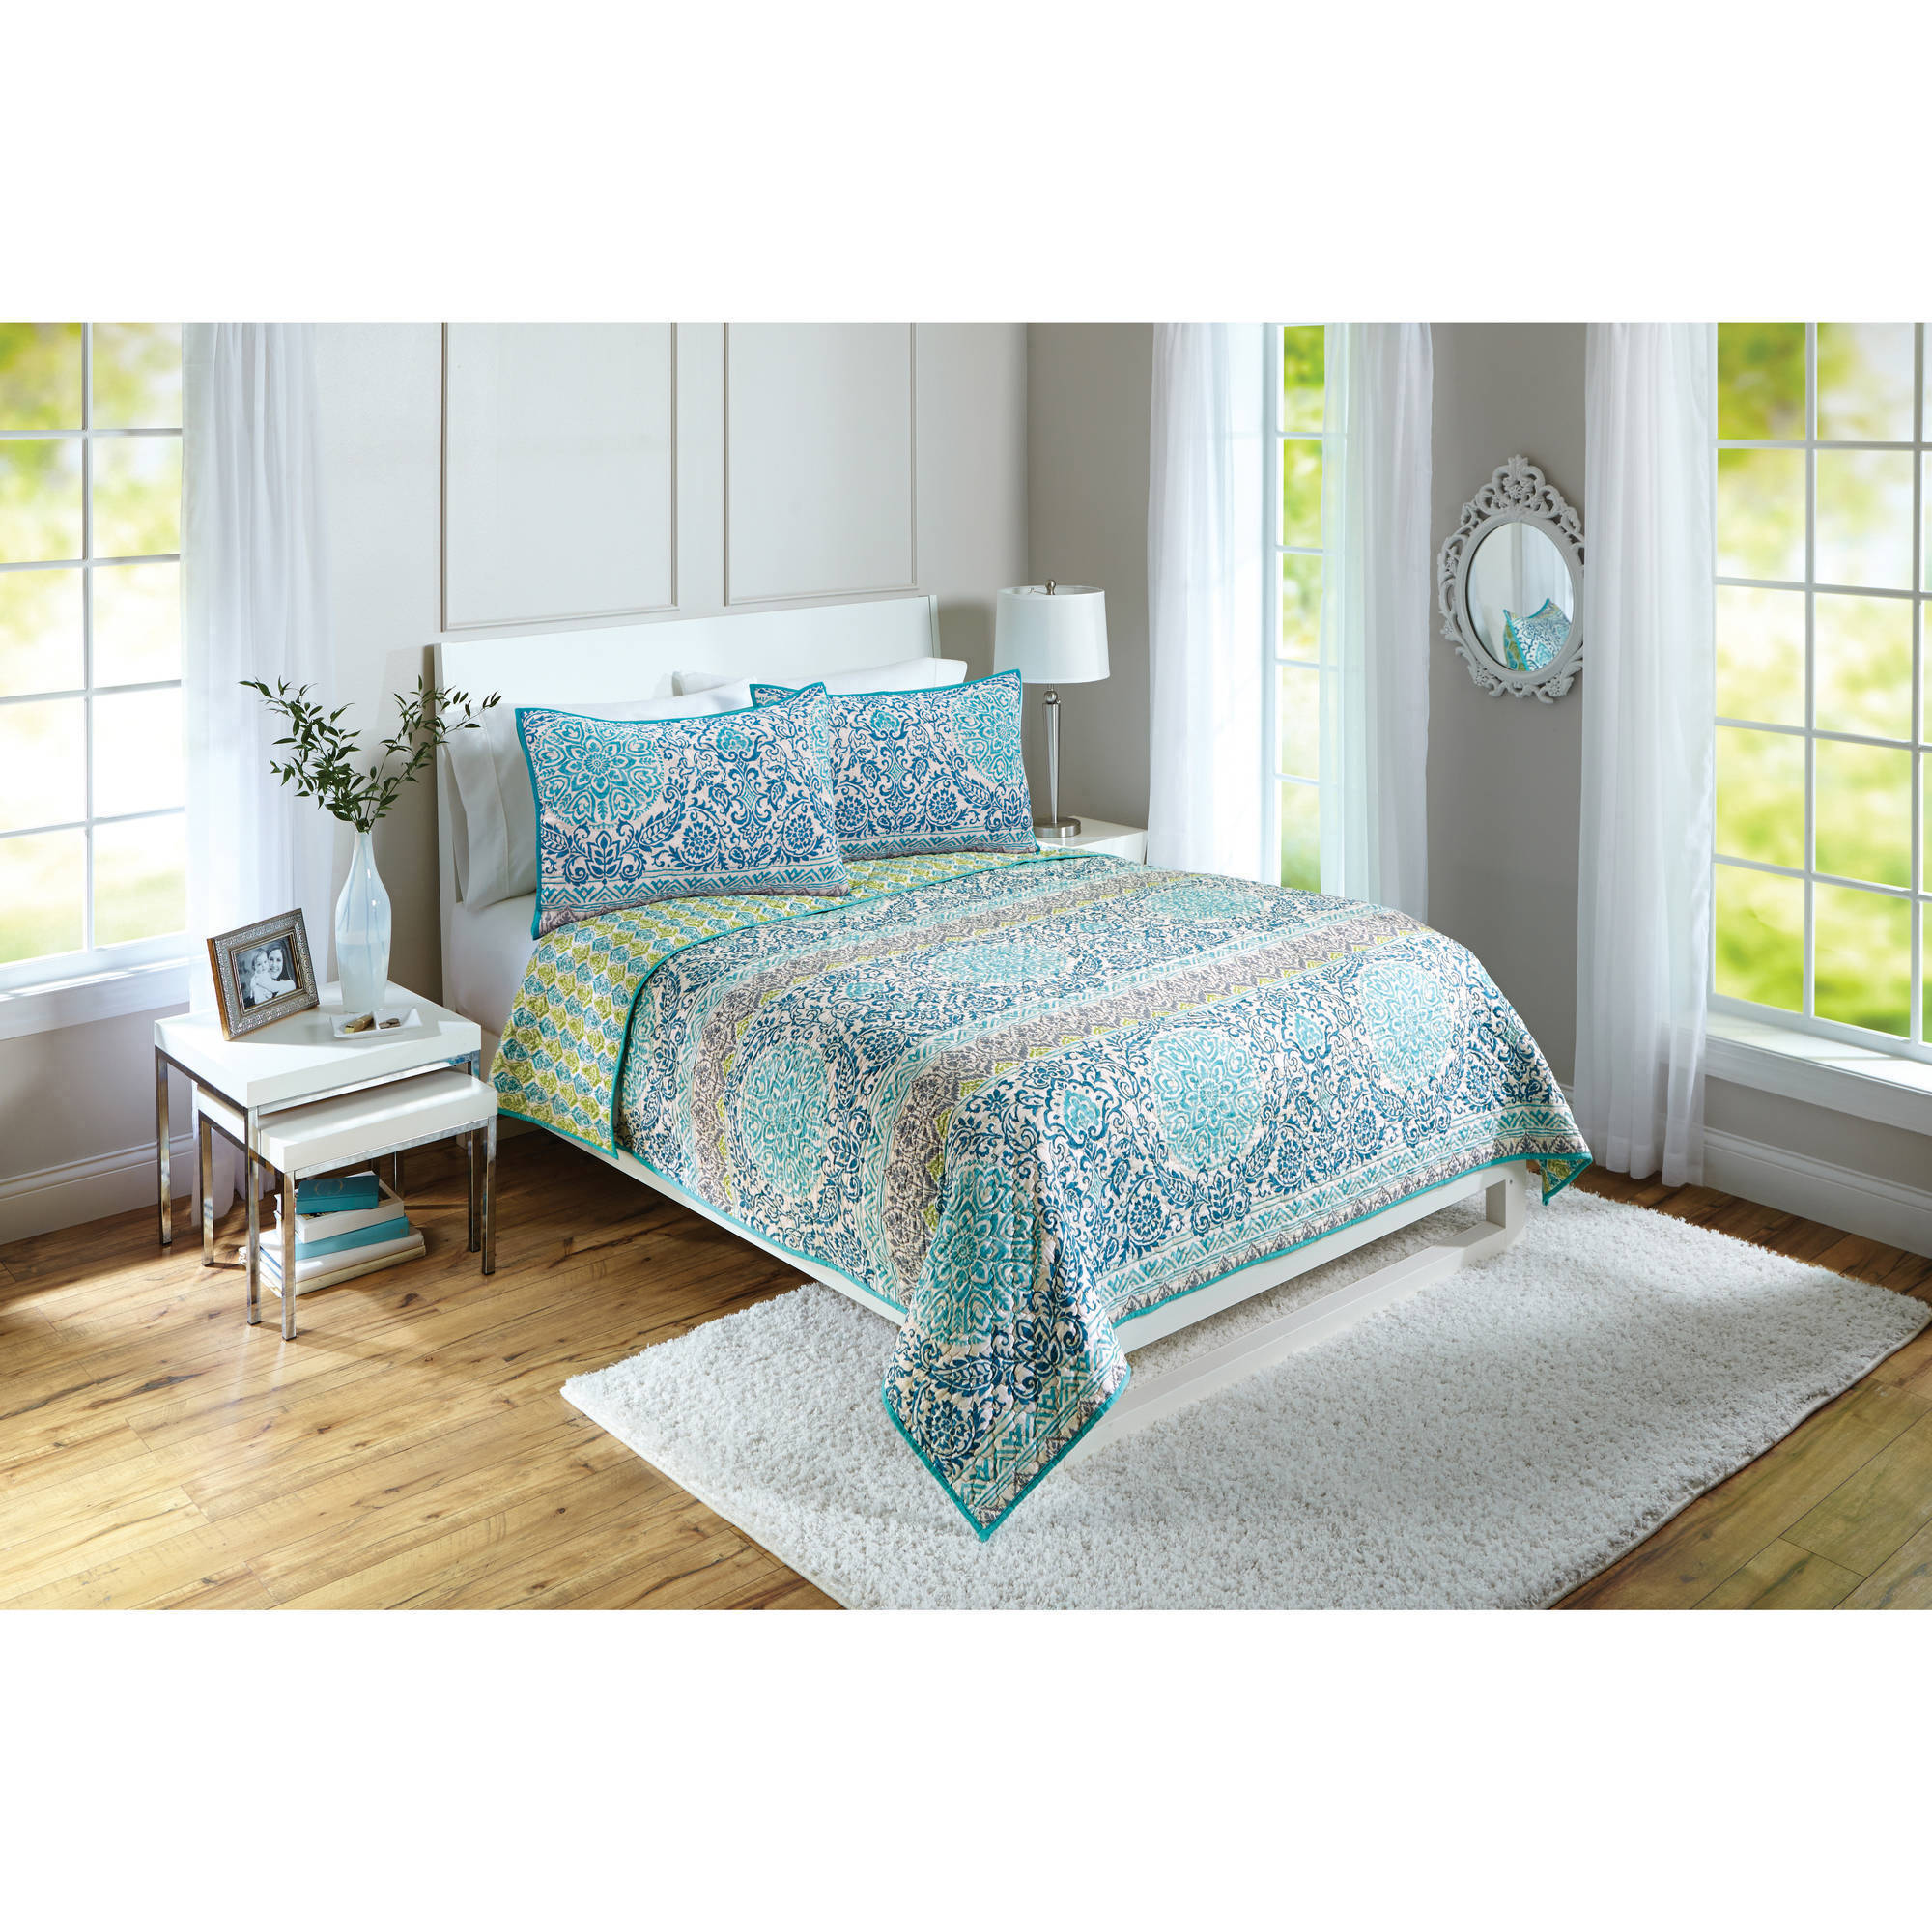 Better Homes and Gardens Layered Medallion Quilt Walmartcom